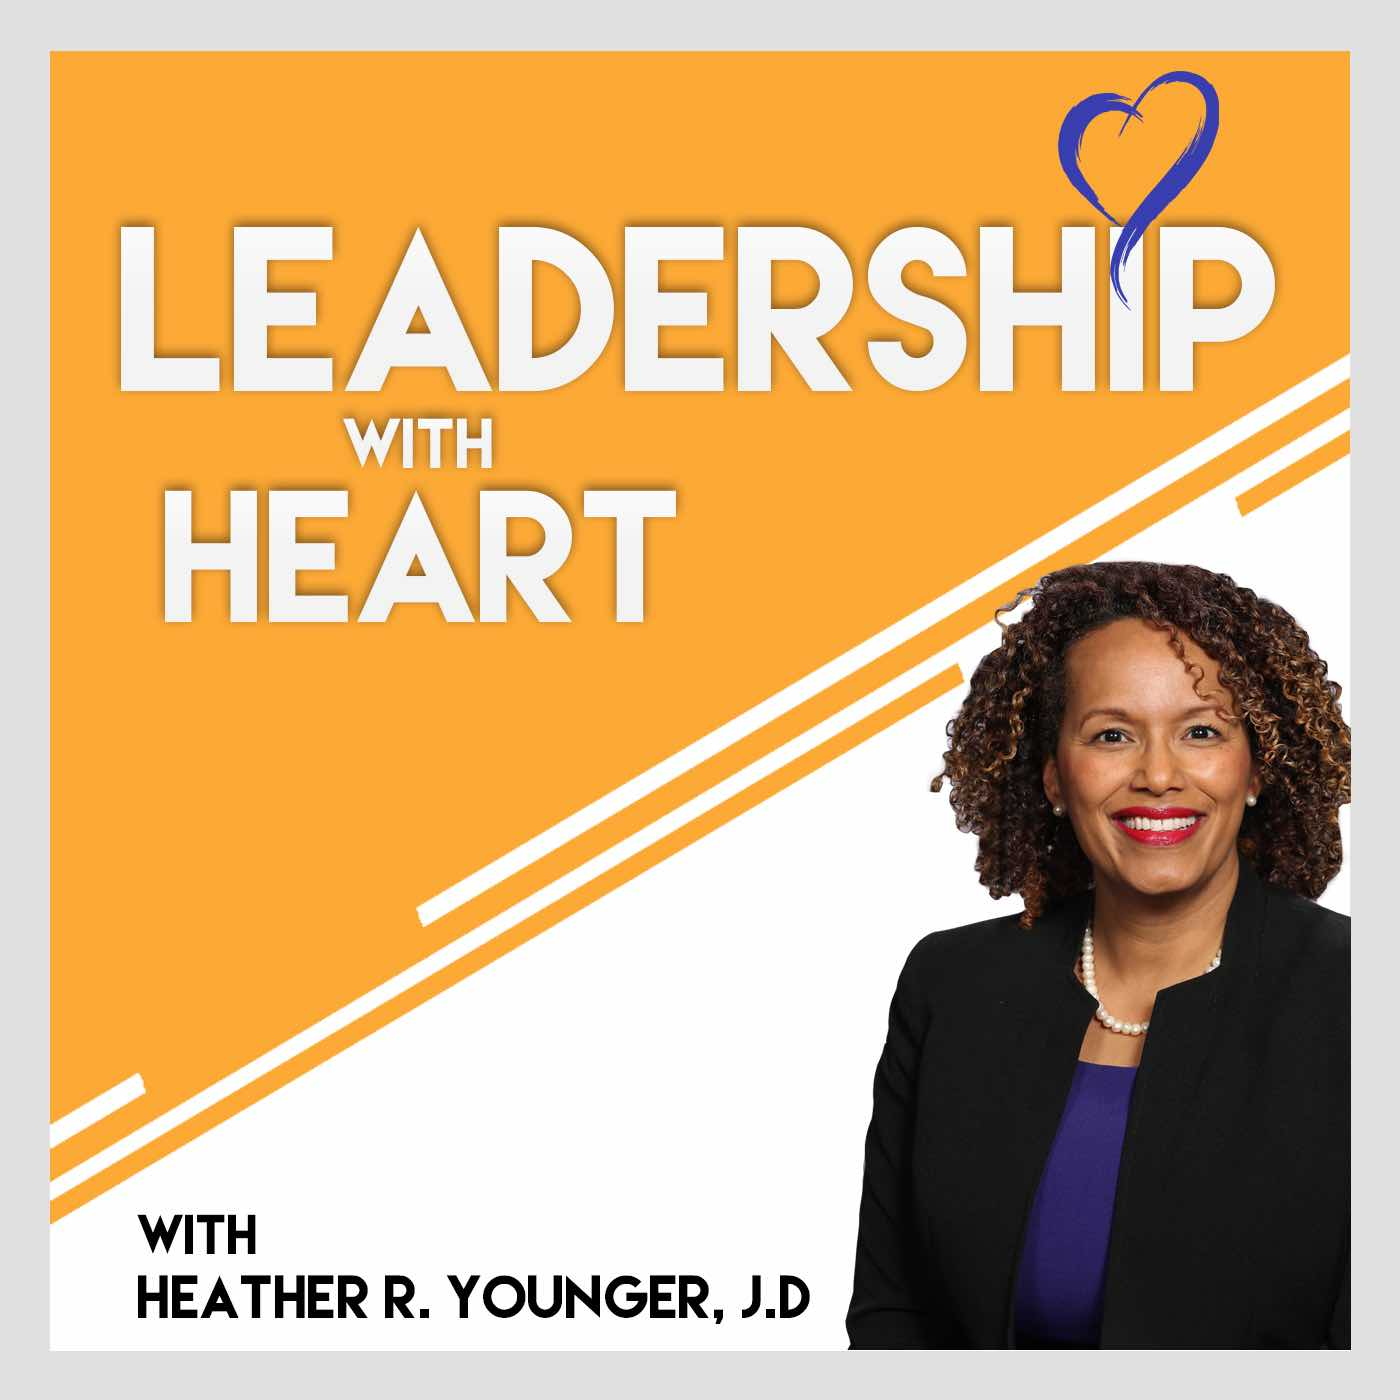 139: Leaders with Heart Start with Caring for Themselves